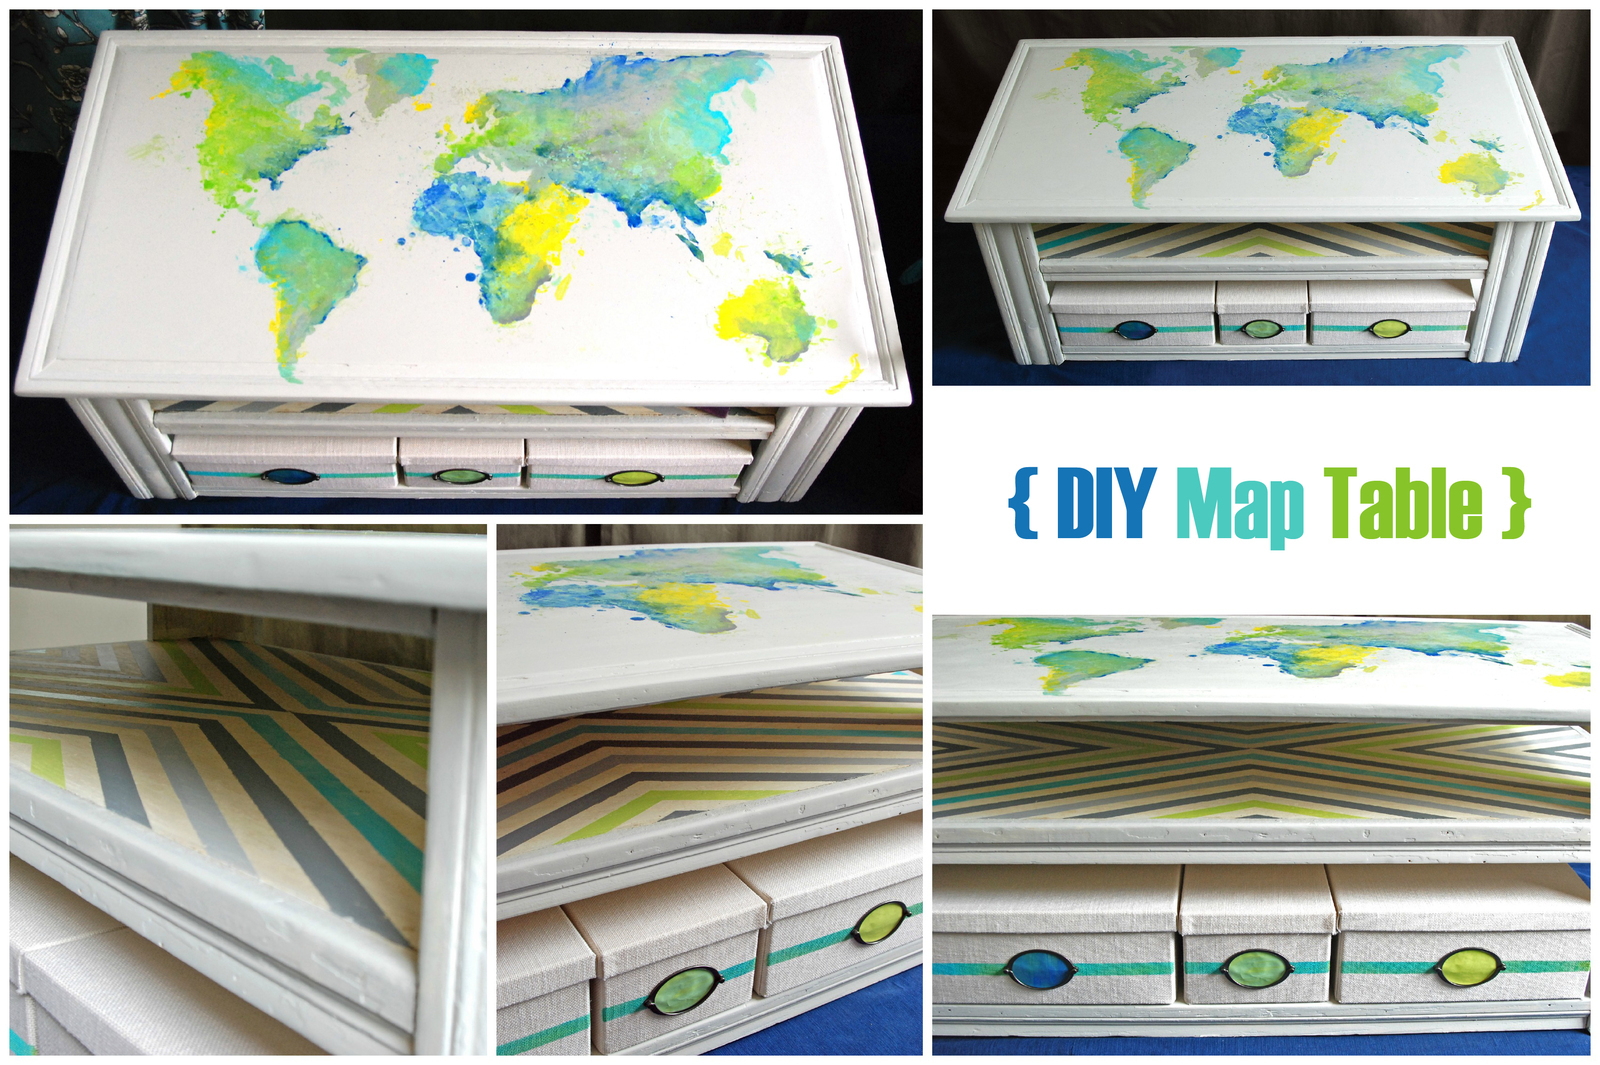 Painted Tables Tentacle Table Top · How To Make A Painted Table · Stencilling And